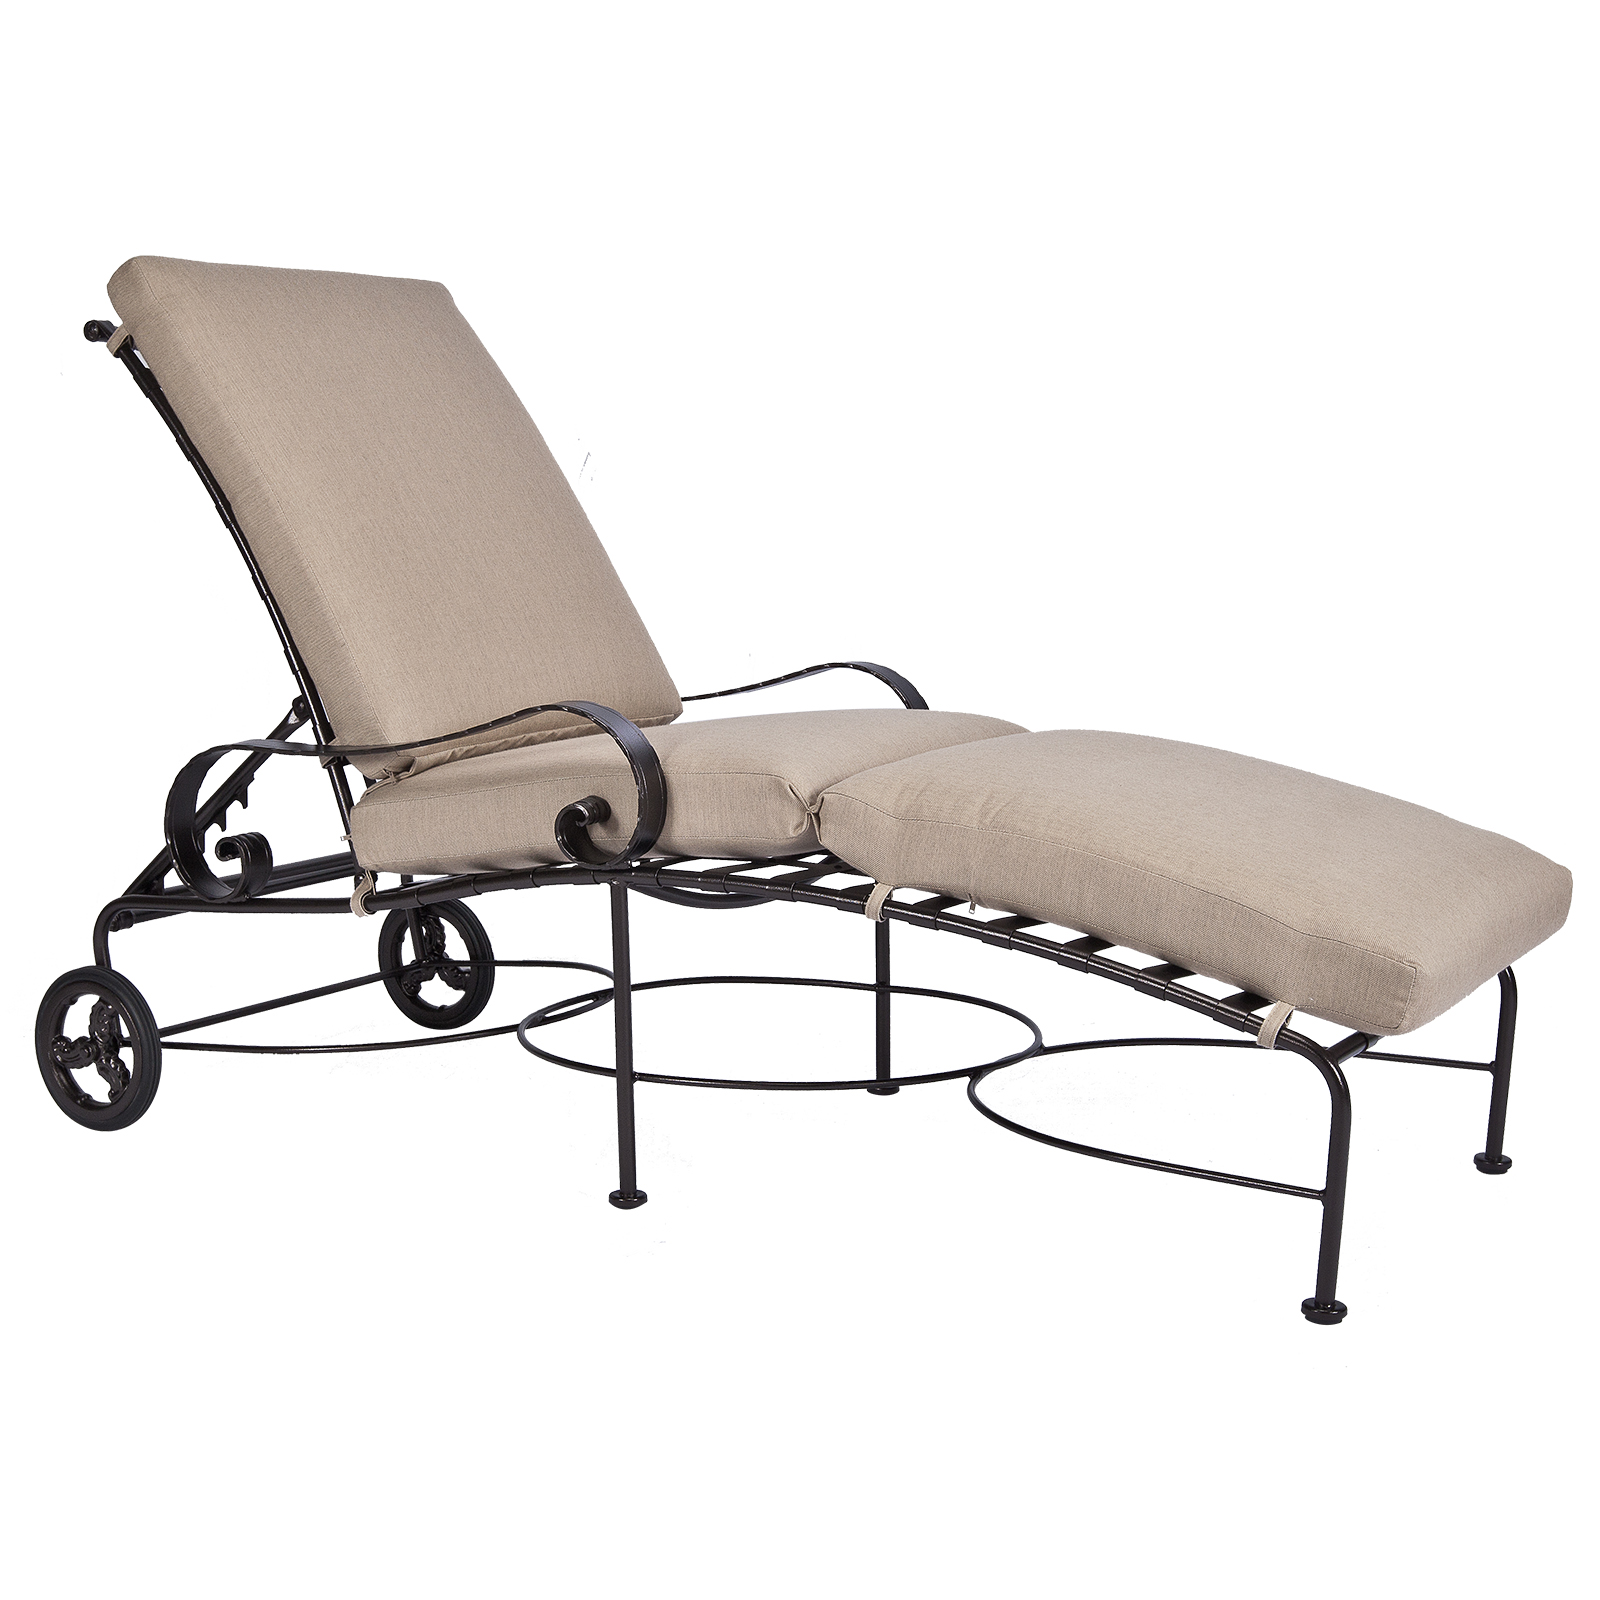 Chaise-Lounge-952-CHW_Catalog_GR35_1600-Classico-W-OW-Lee